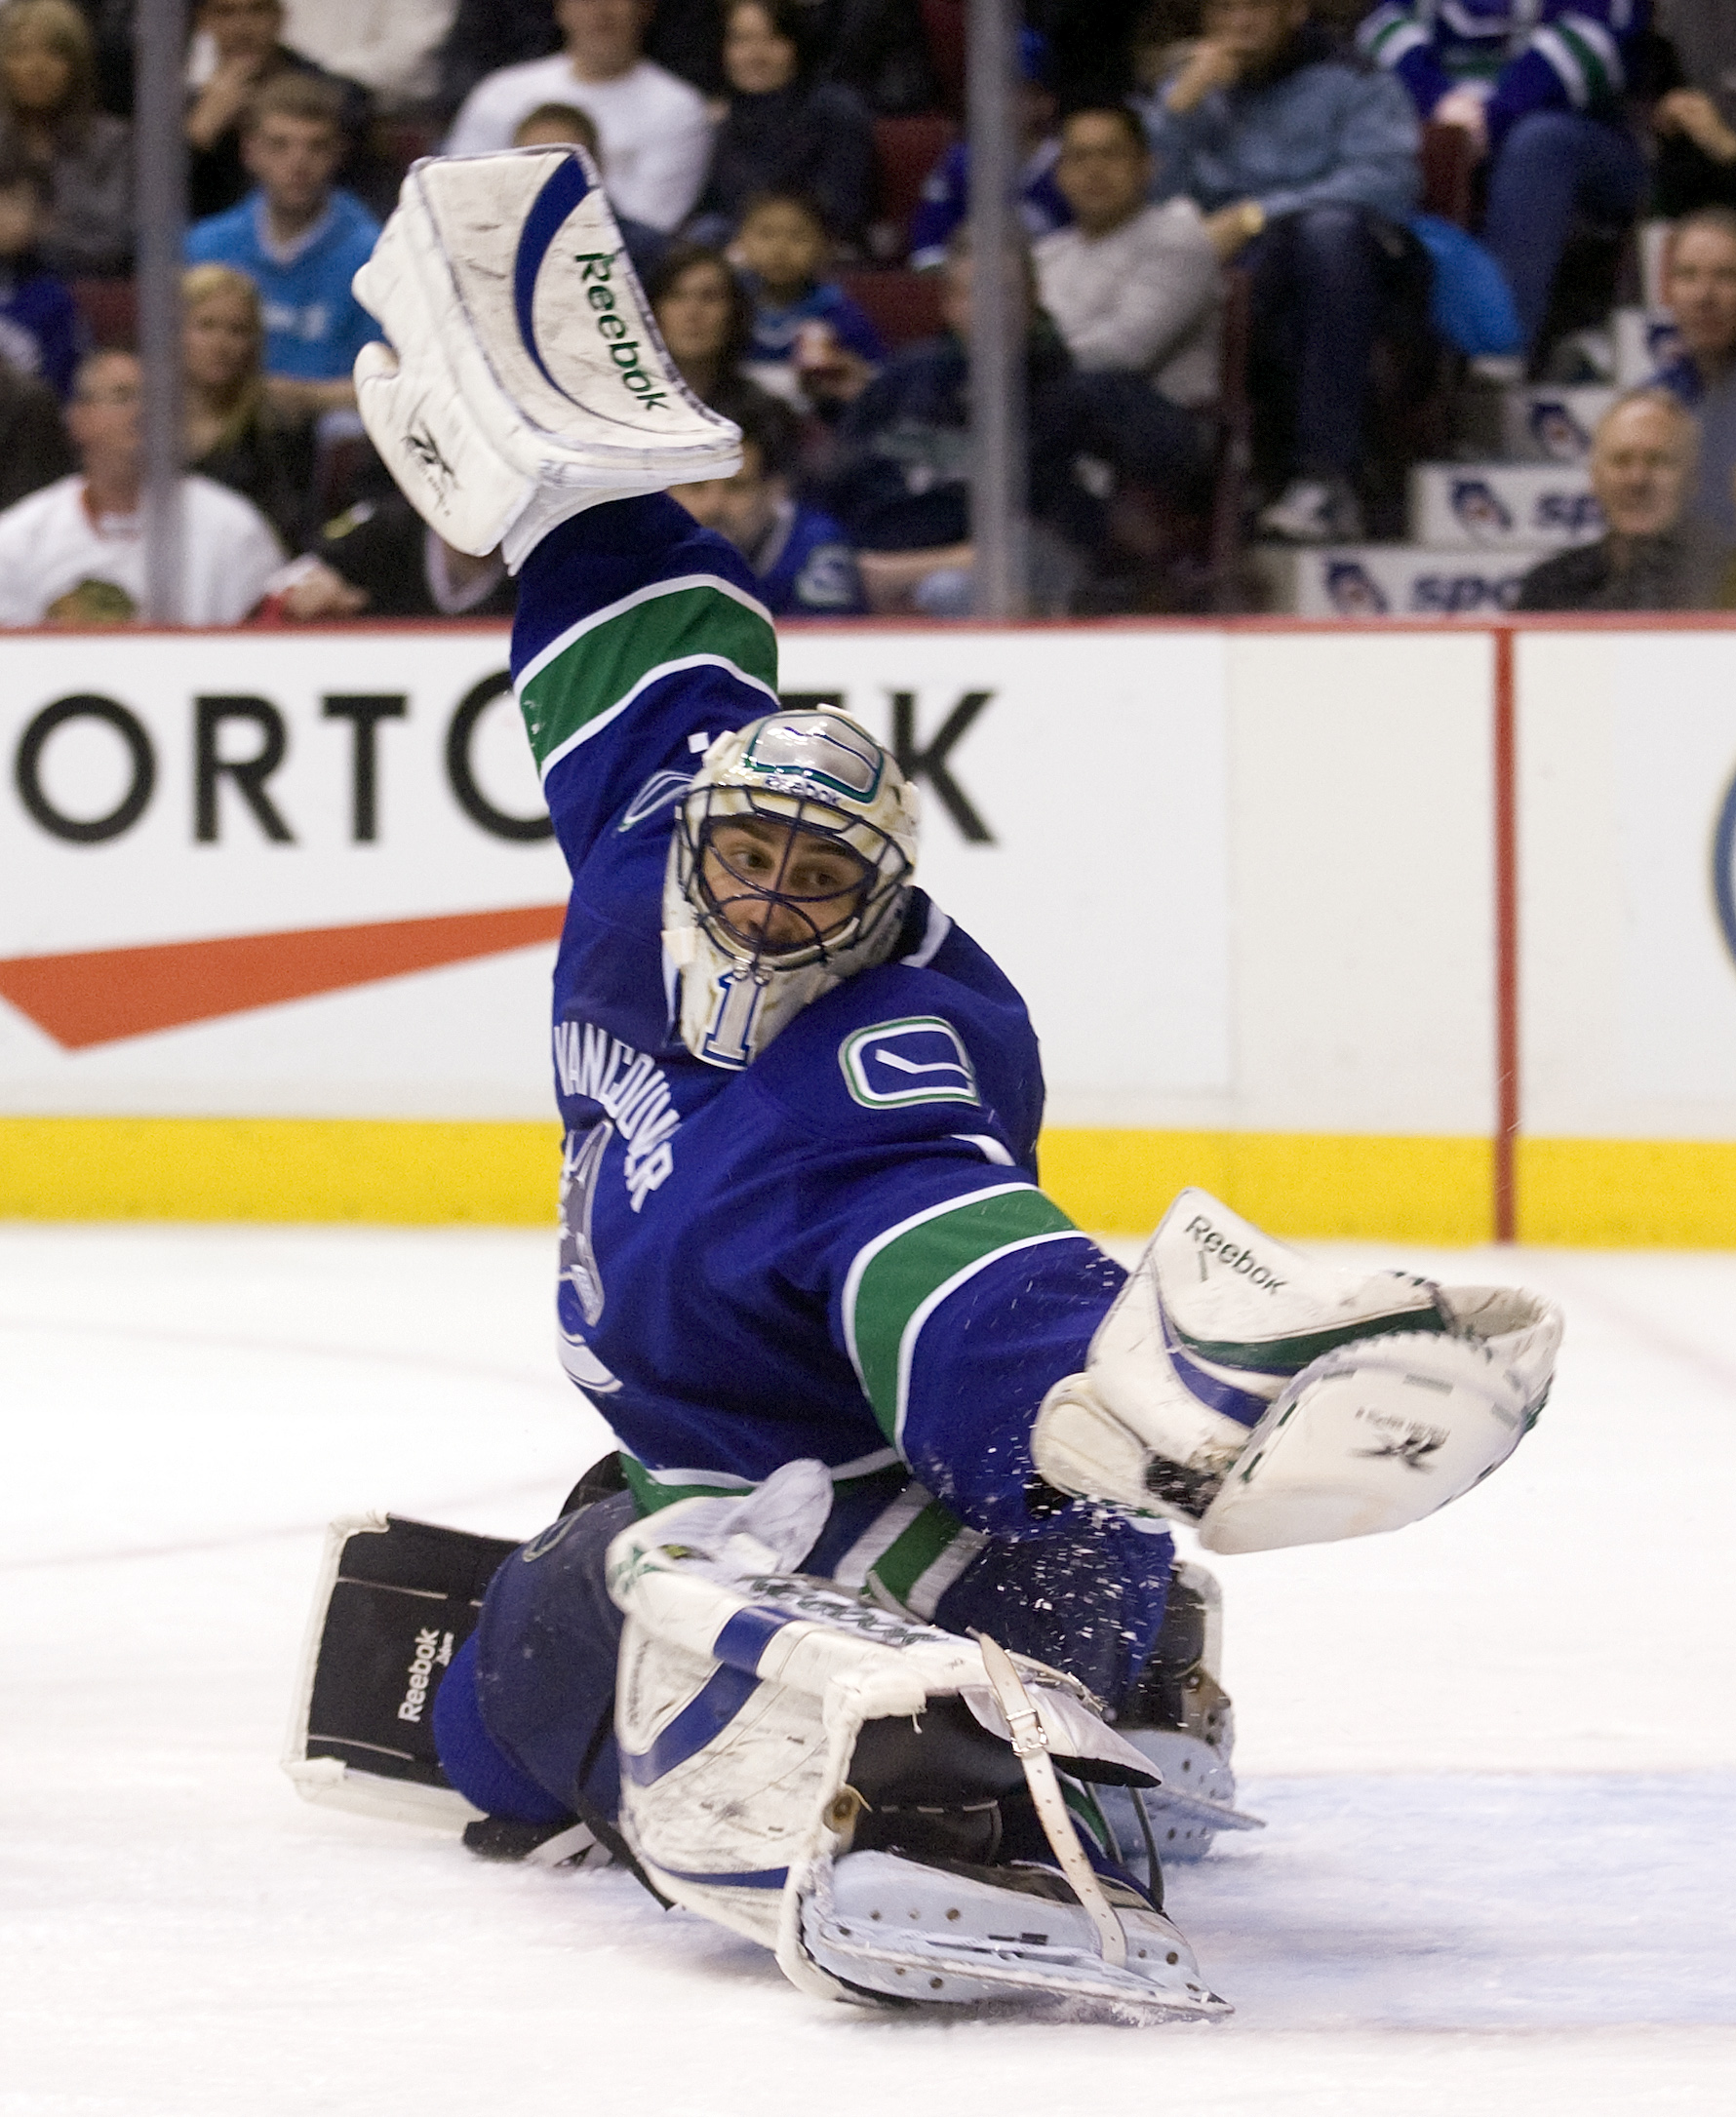 VANCOUVER, CANADA - JANUARY 23: Goalie Roberto Luongo #1 of the Vancouver Canucks reaches out to make a glove save during the third period of NHL action against the Chicago Blackhawks on January 23, 2010 at General Motors Place in Vancouver, British Colum